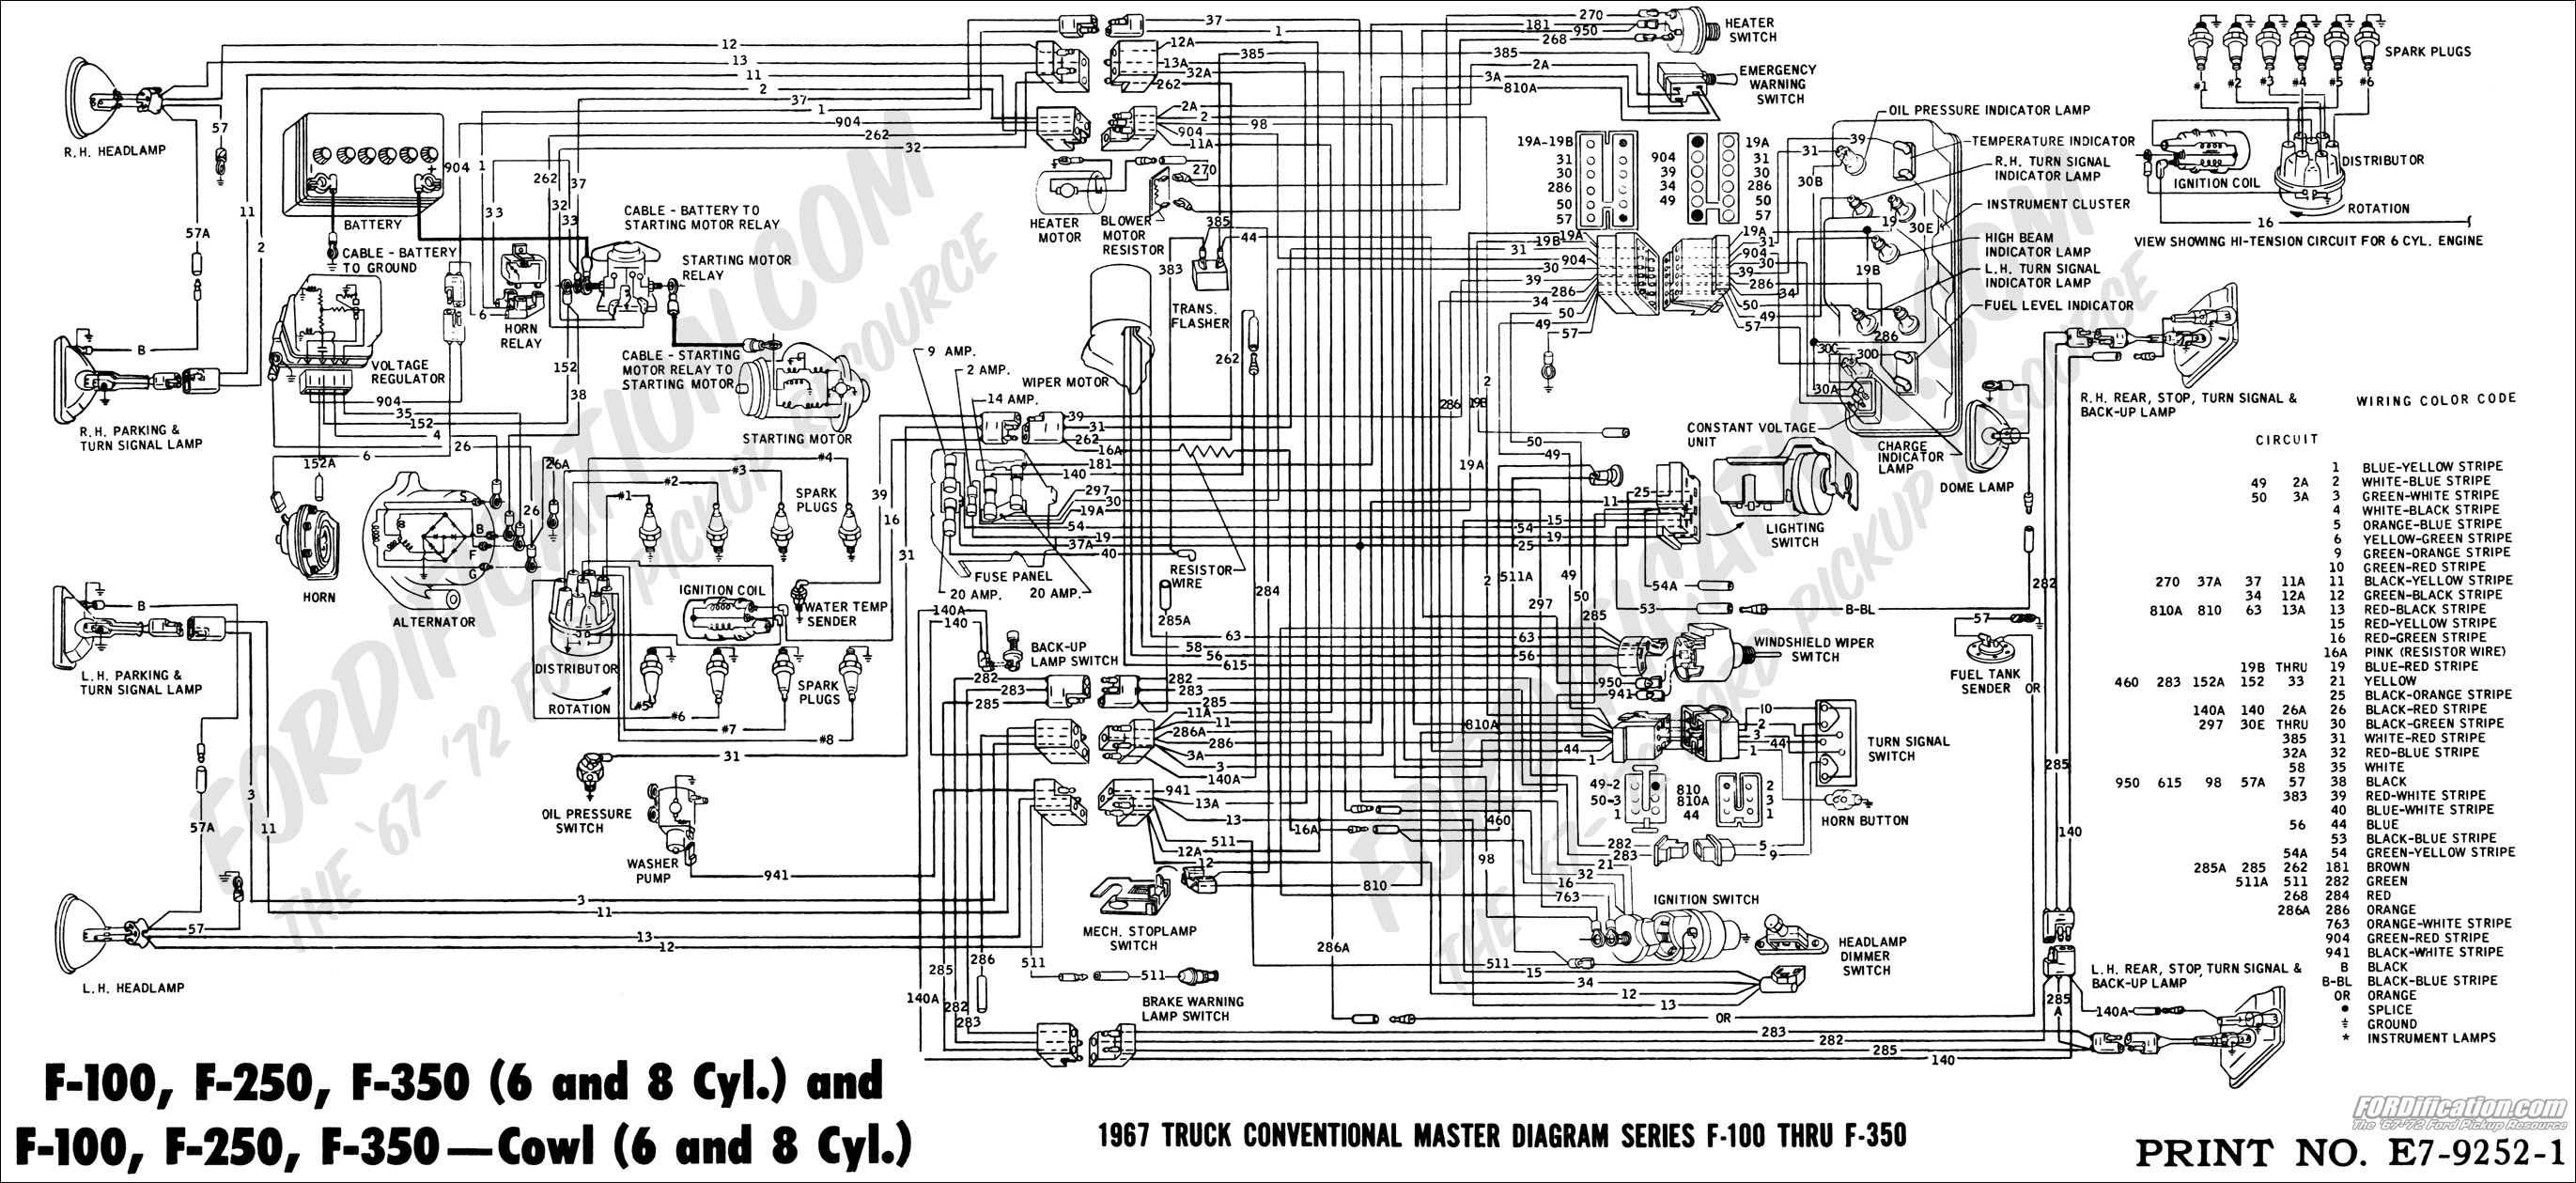 1989 Ford F 250 Fuel System Wiring Diagram Starting Know About 2004 150 Fuse Box Identification 89 F250 Simple Rh David Huggett Co Uk